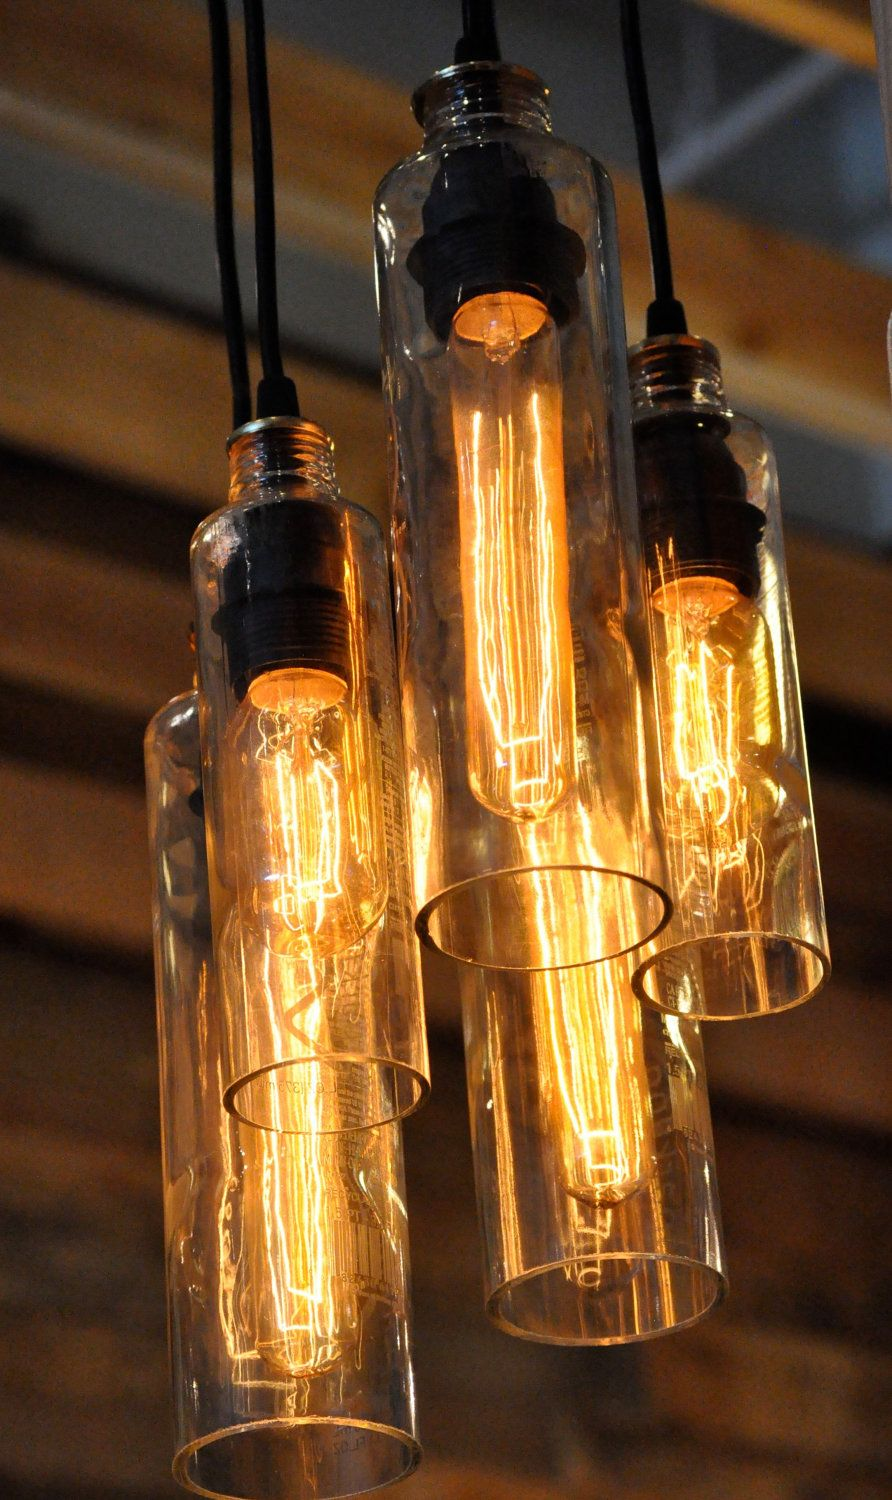 Recycled pendants etsy finds pinterest voss bottle recycled ive always like voss bottles a recycled bottle lamp chandelier fit for a downtown loft 5 voss bottles cascade down with glowing fire from vintage aloadofball Choice Image